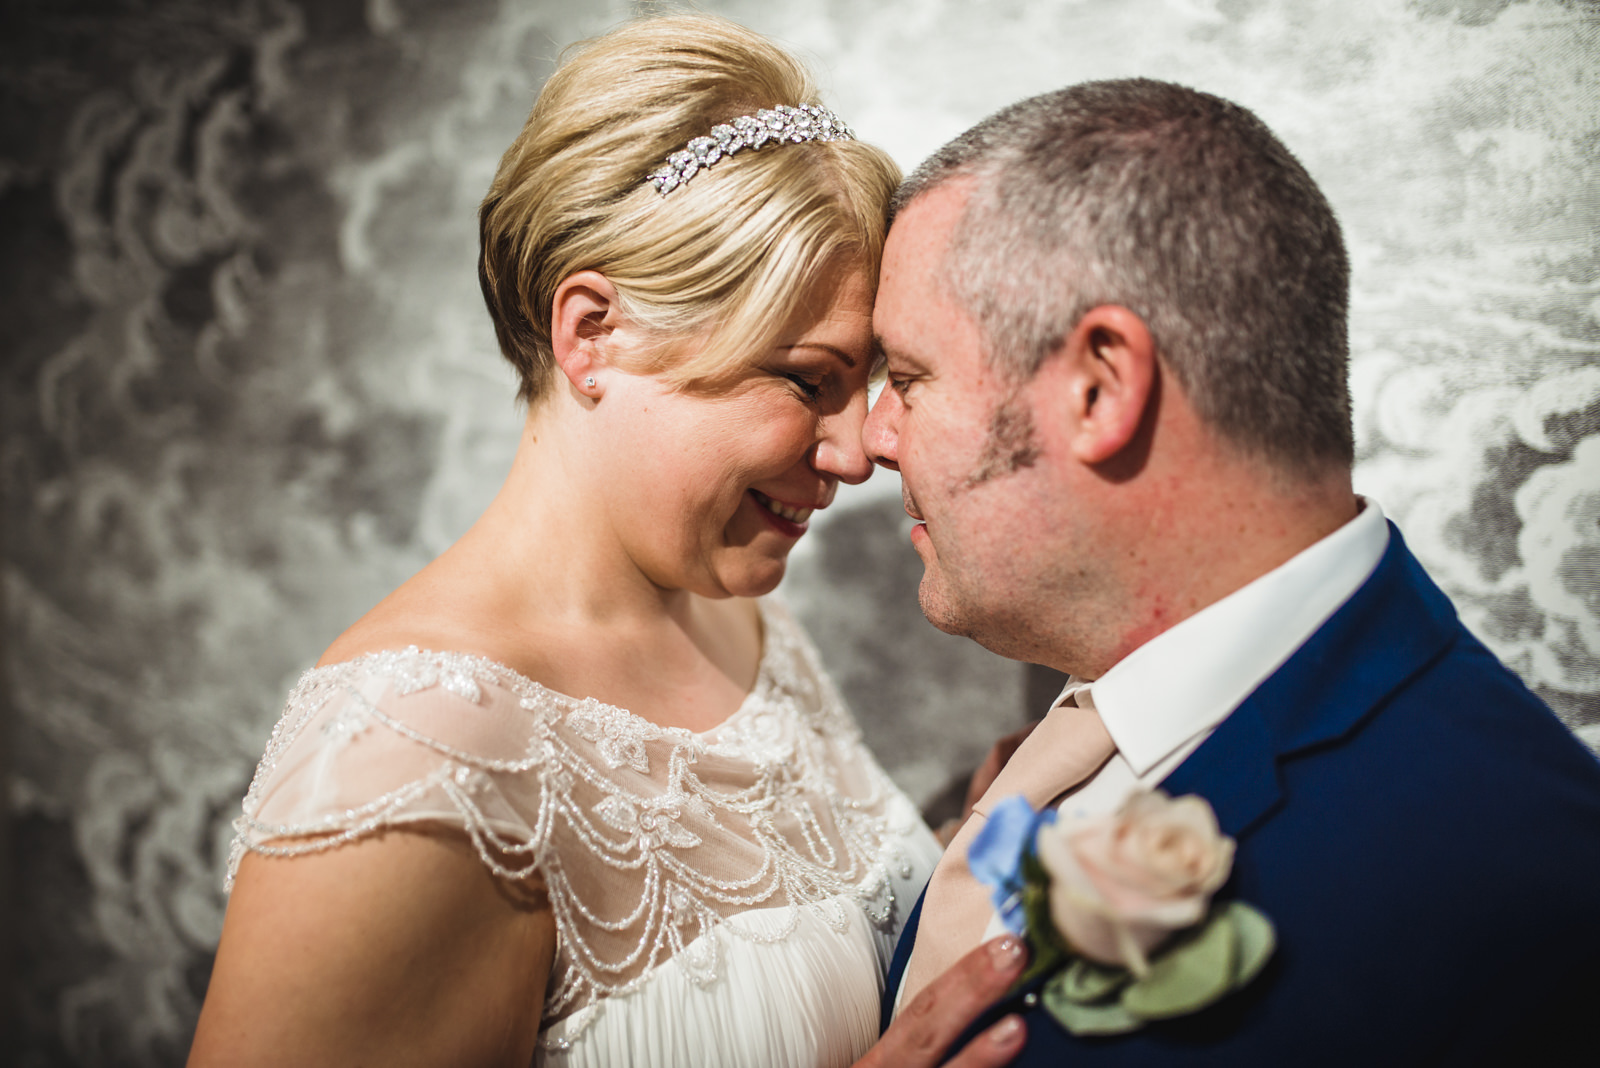 York wedding photos at Doubletree by Hilton Hotel, Monk Bar York